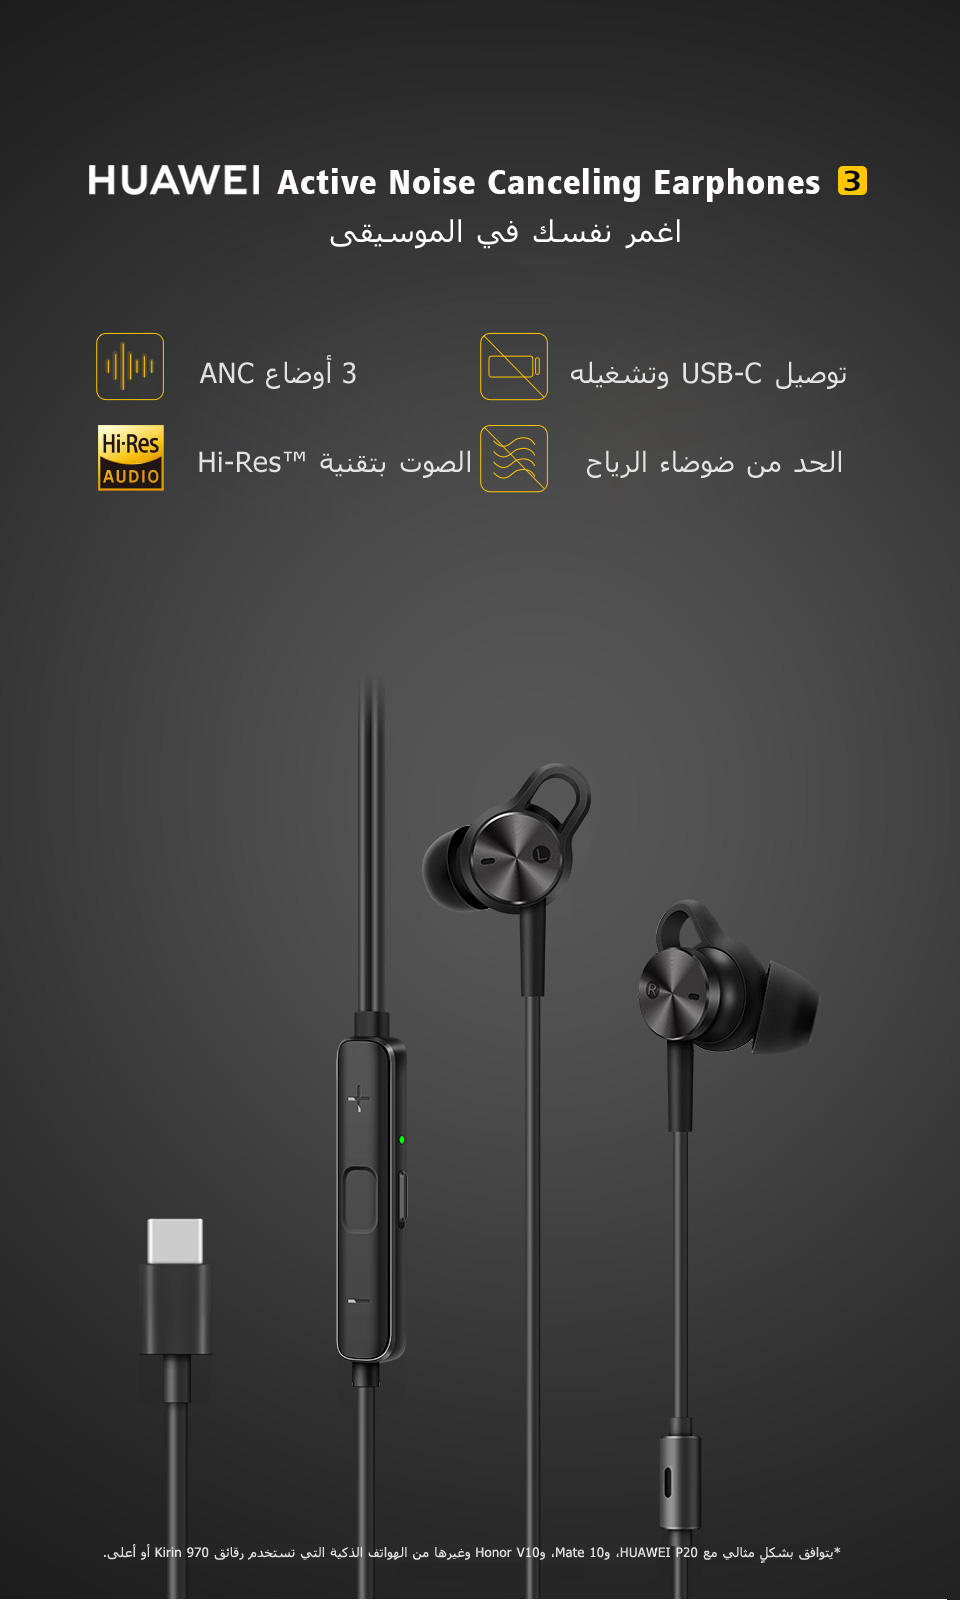 HUAWEI Active Noise Canceling Earphones 3